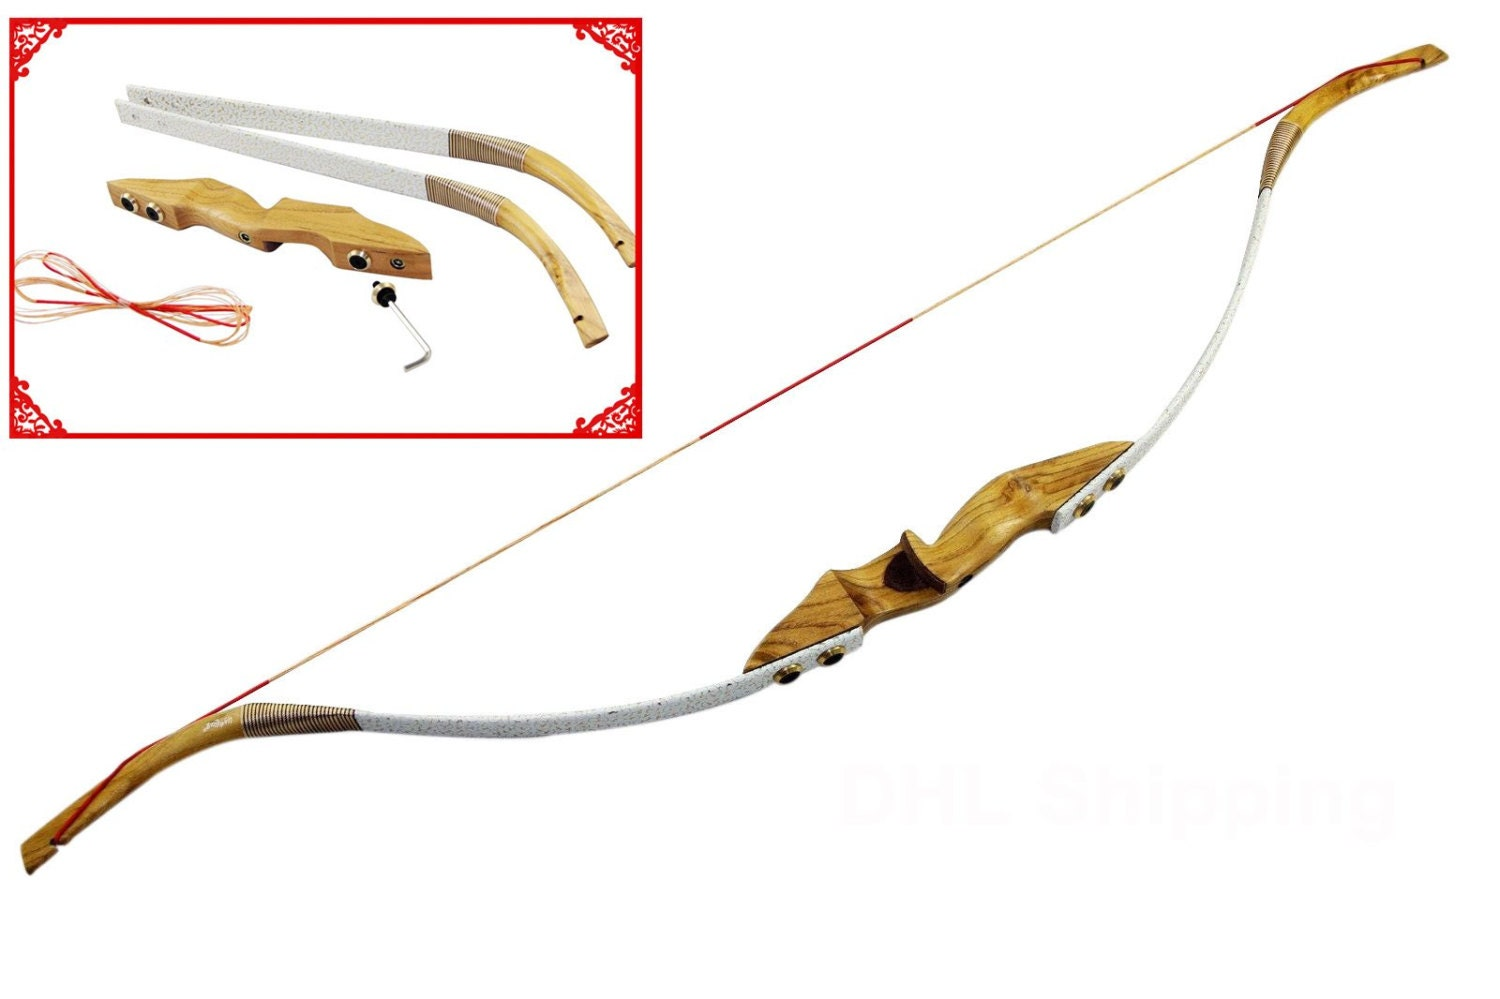 Good recurve bow for beginners